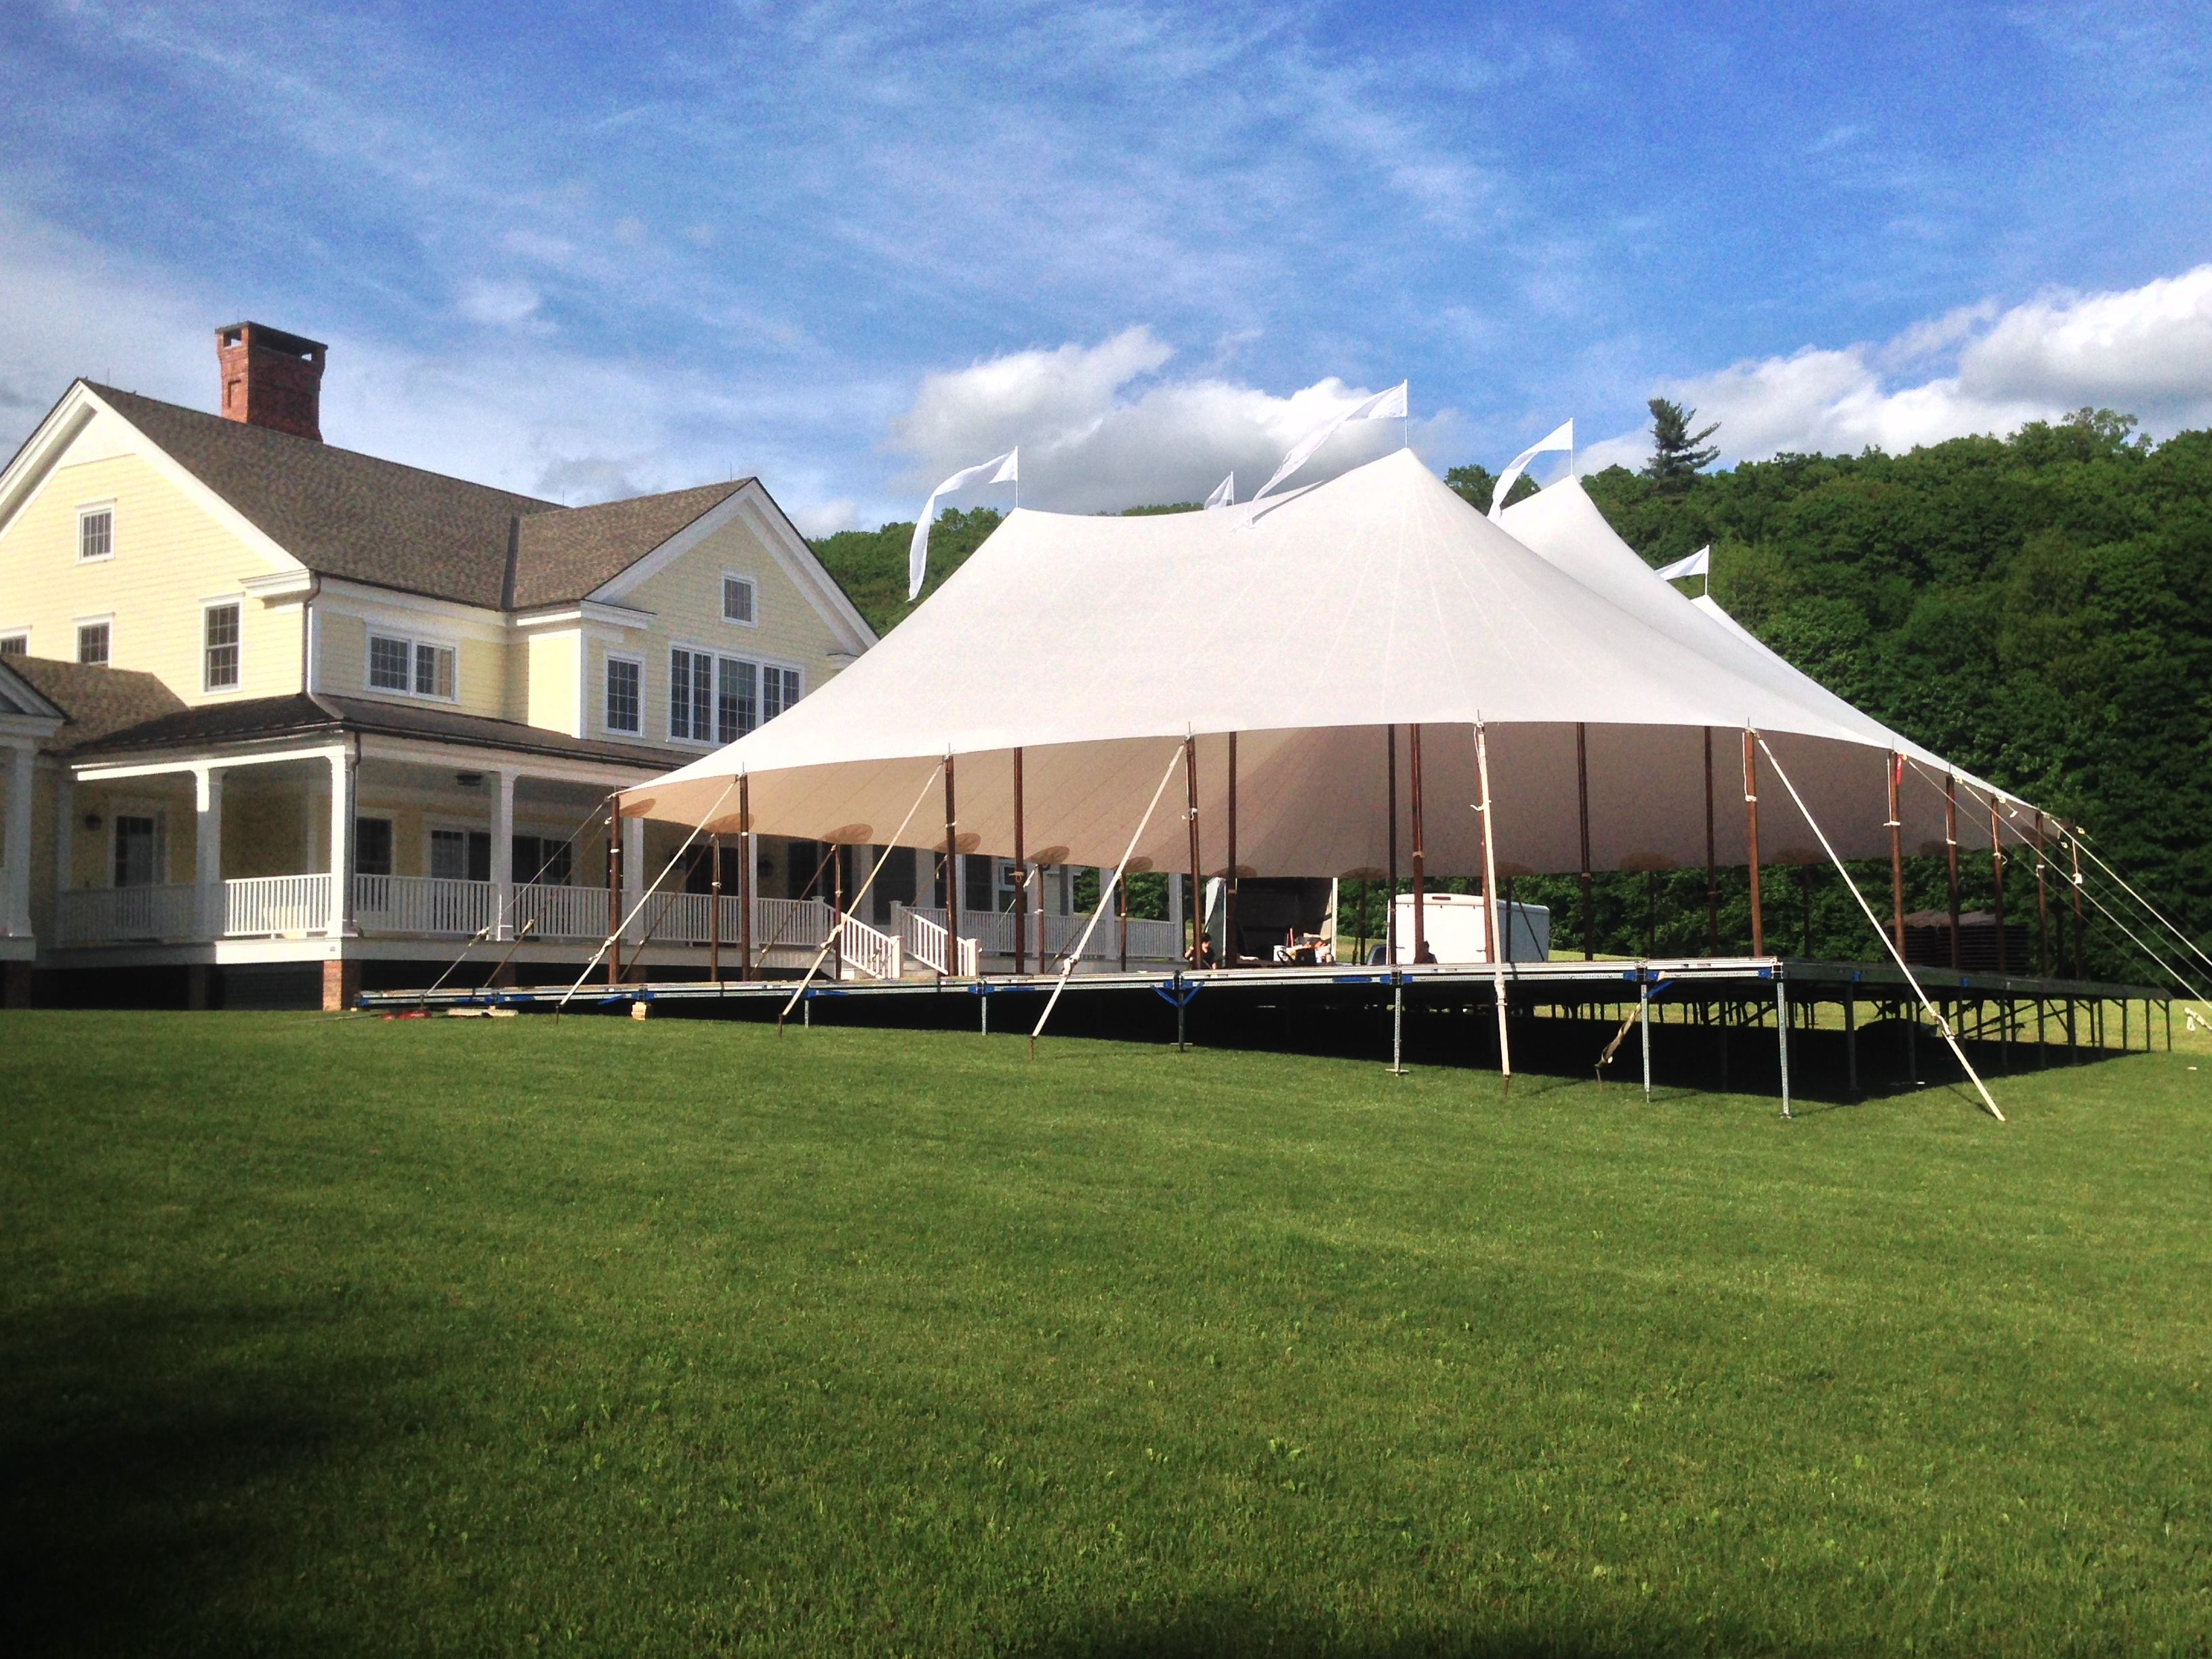 Our country tent flooring and tidewater tents make un-level ground a perfect place for & Our country tent flooring and tidewater tents make un-level ground ...